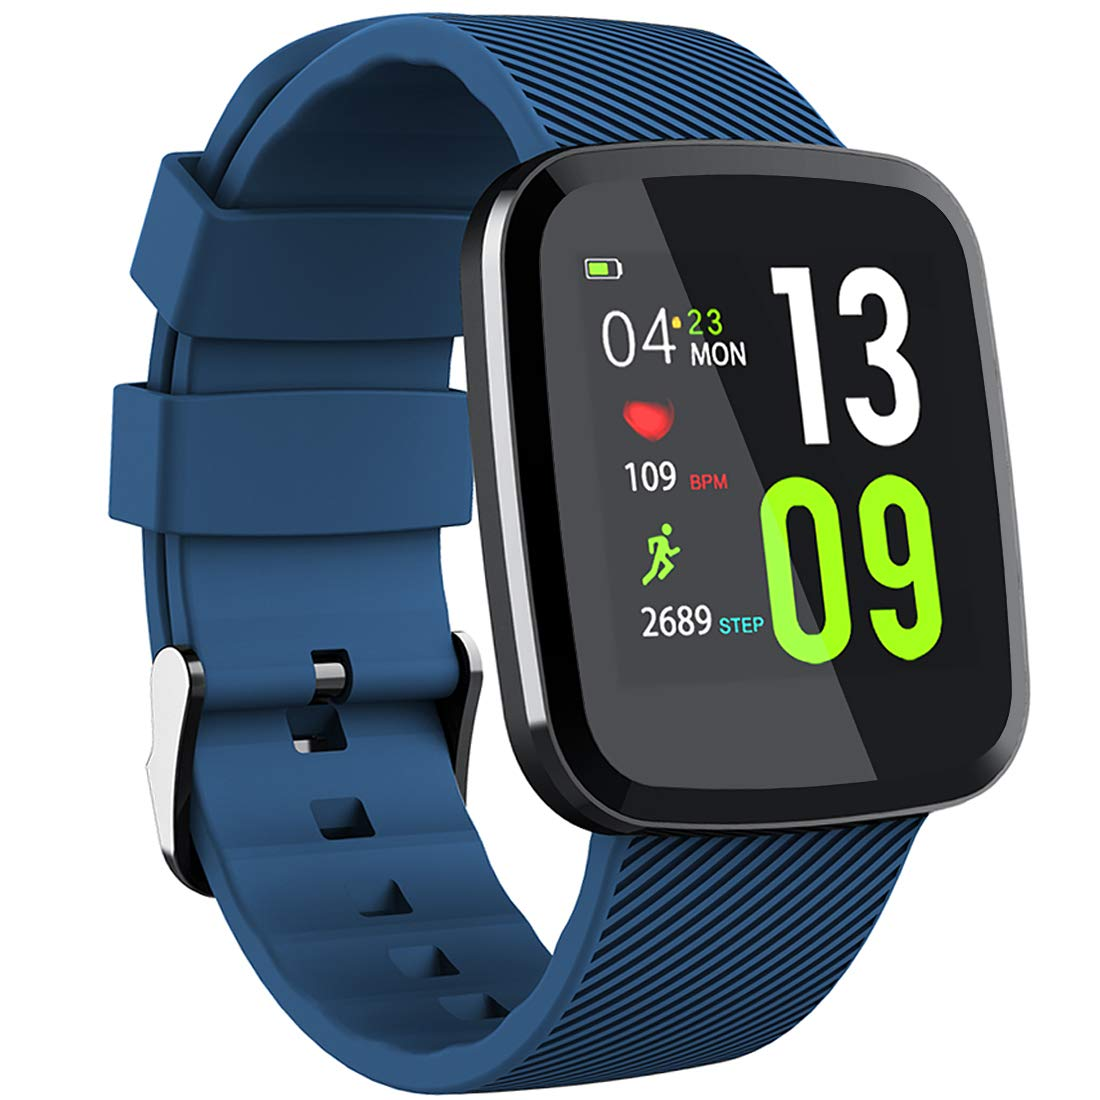 Touchscreen Fitness Tracker, Slim Waterproof Heart Rate Smart Watch, Swimming Running Cycling Sport Wristband,Blue